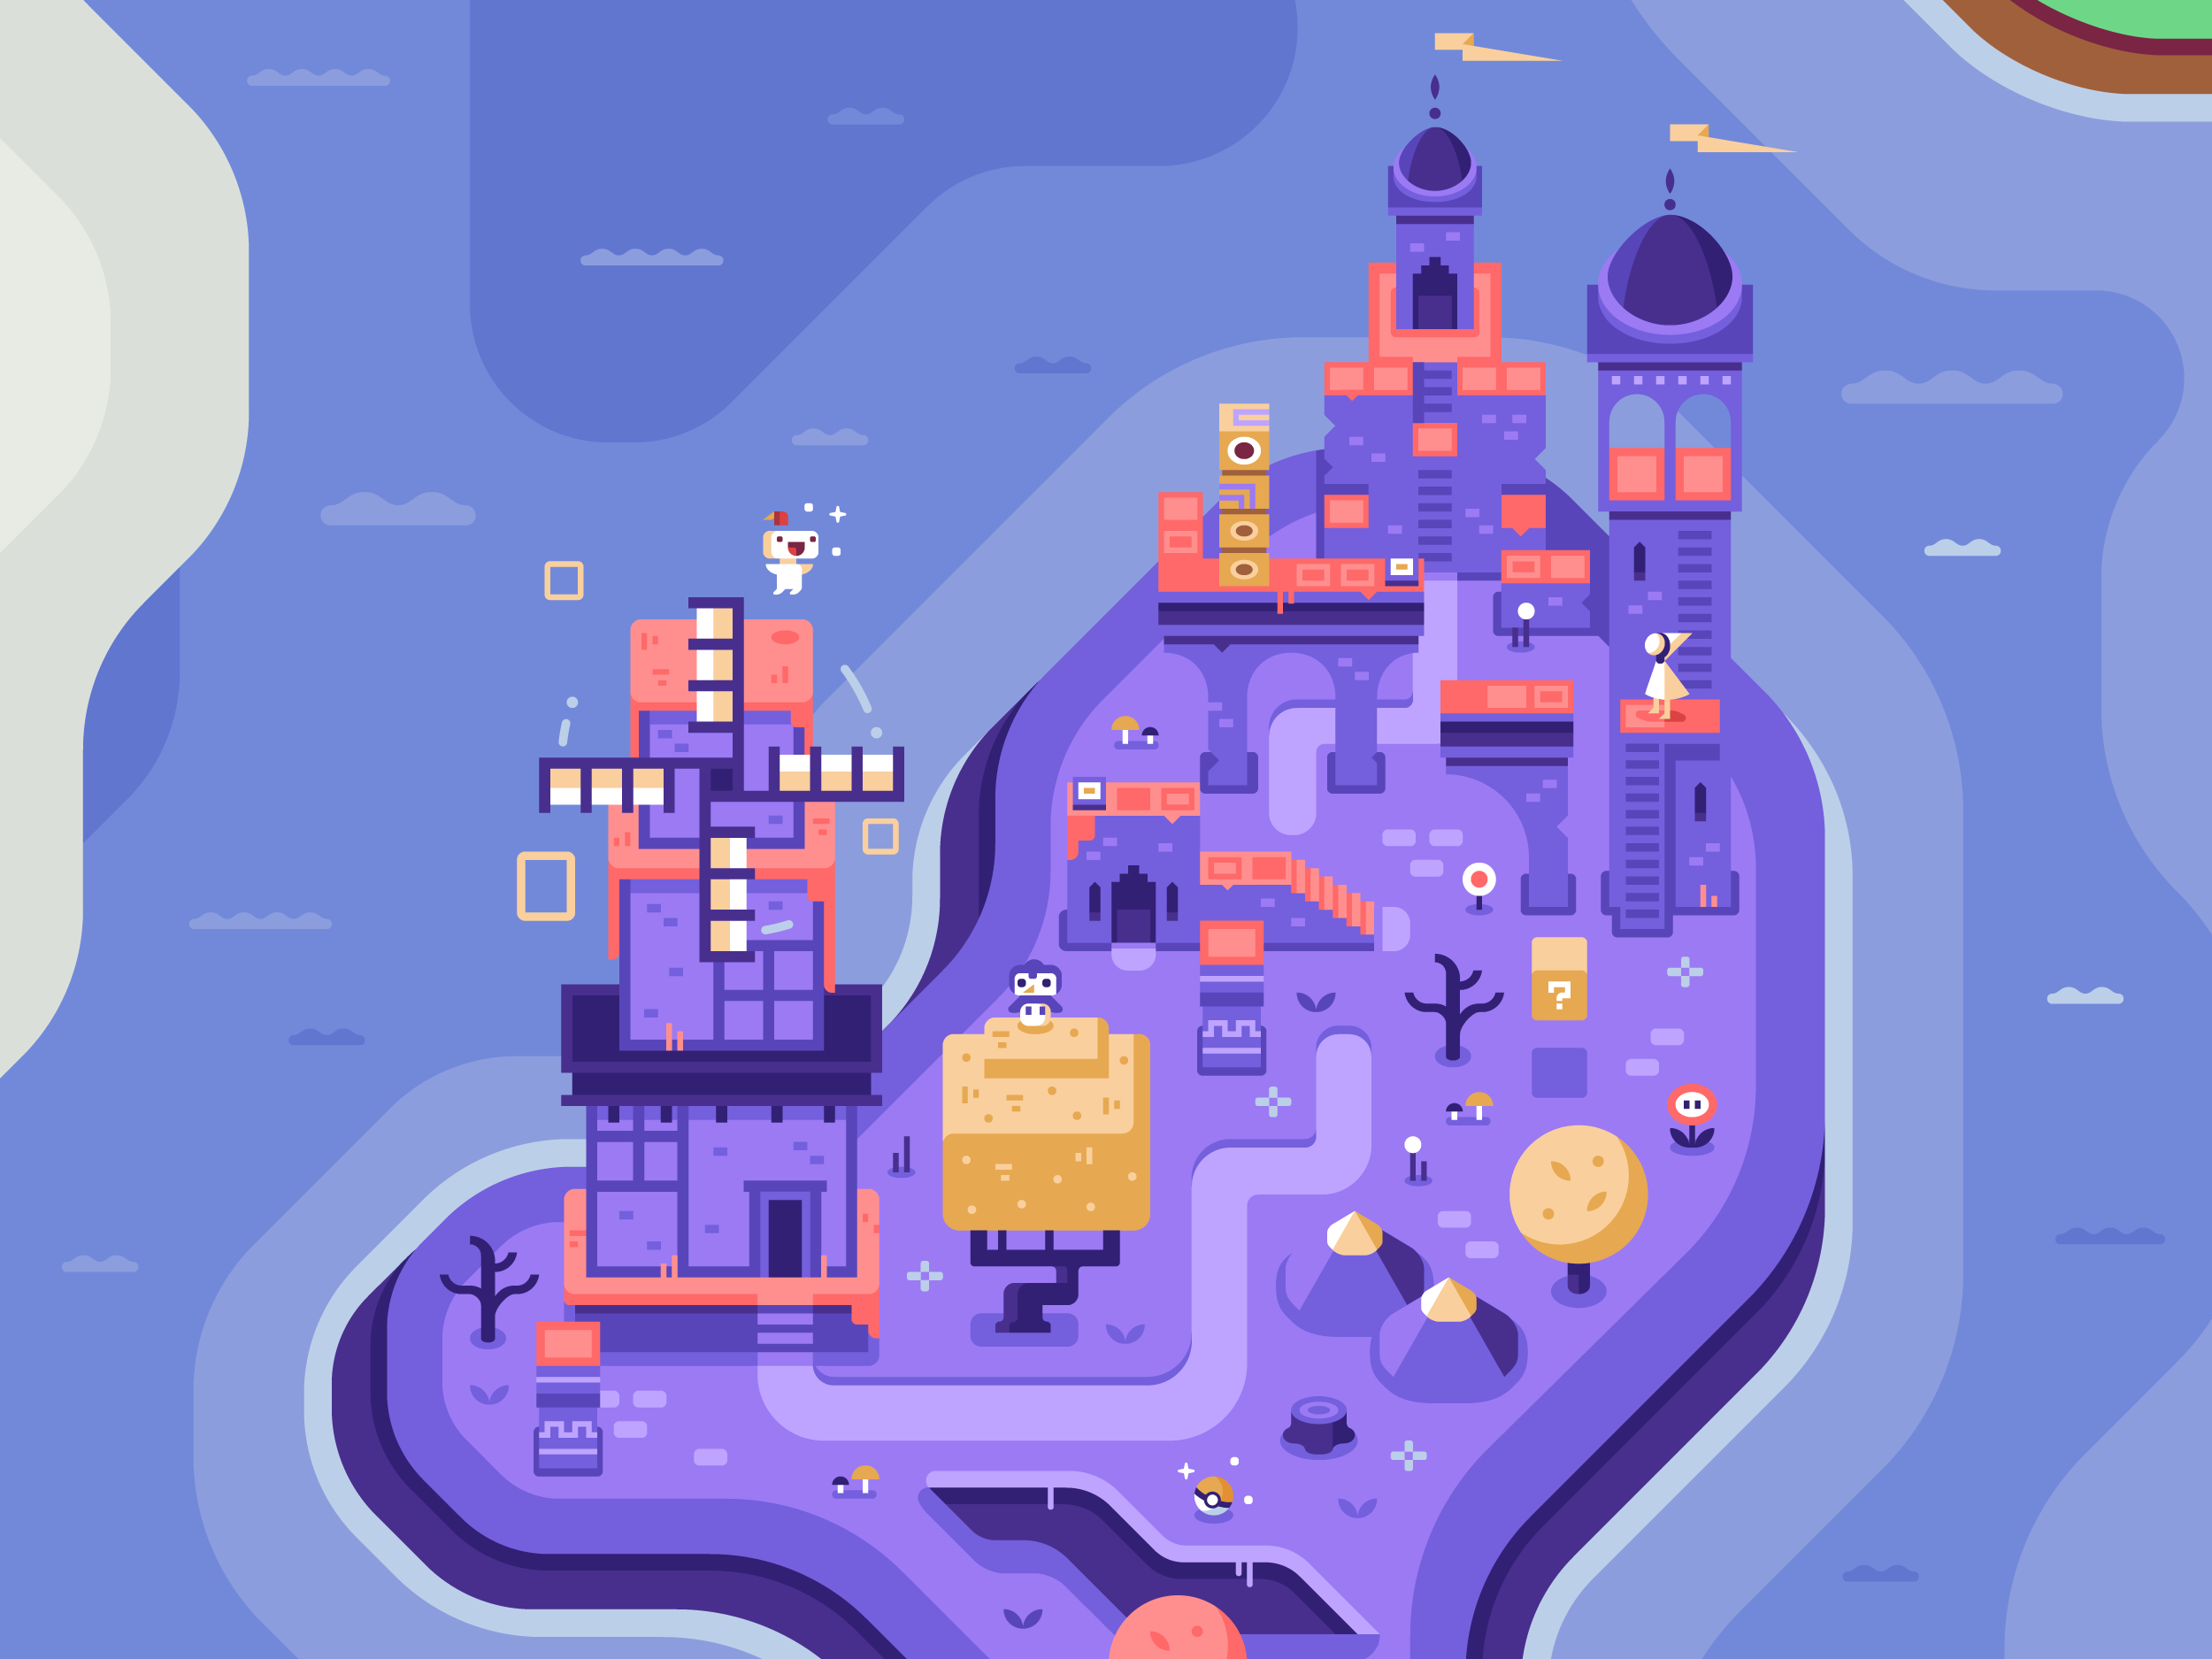 Fez and Monument Valley, Discord Office Mural illustrations by Matt Anderson and Canopy Design and Illustration